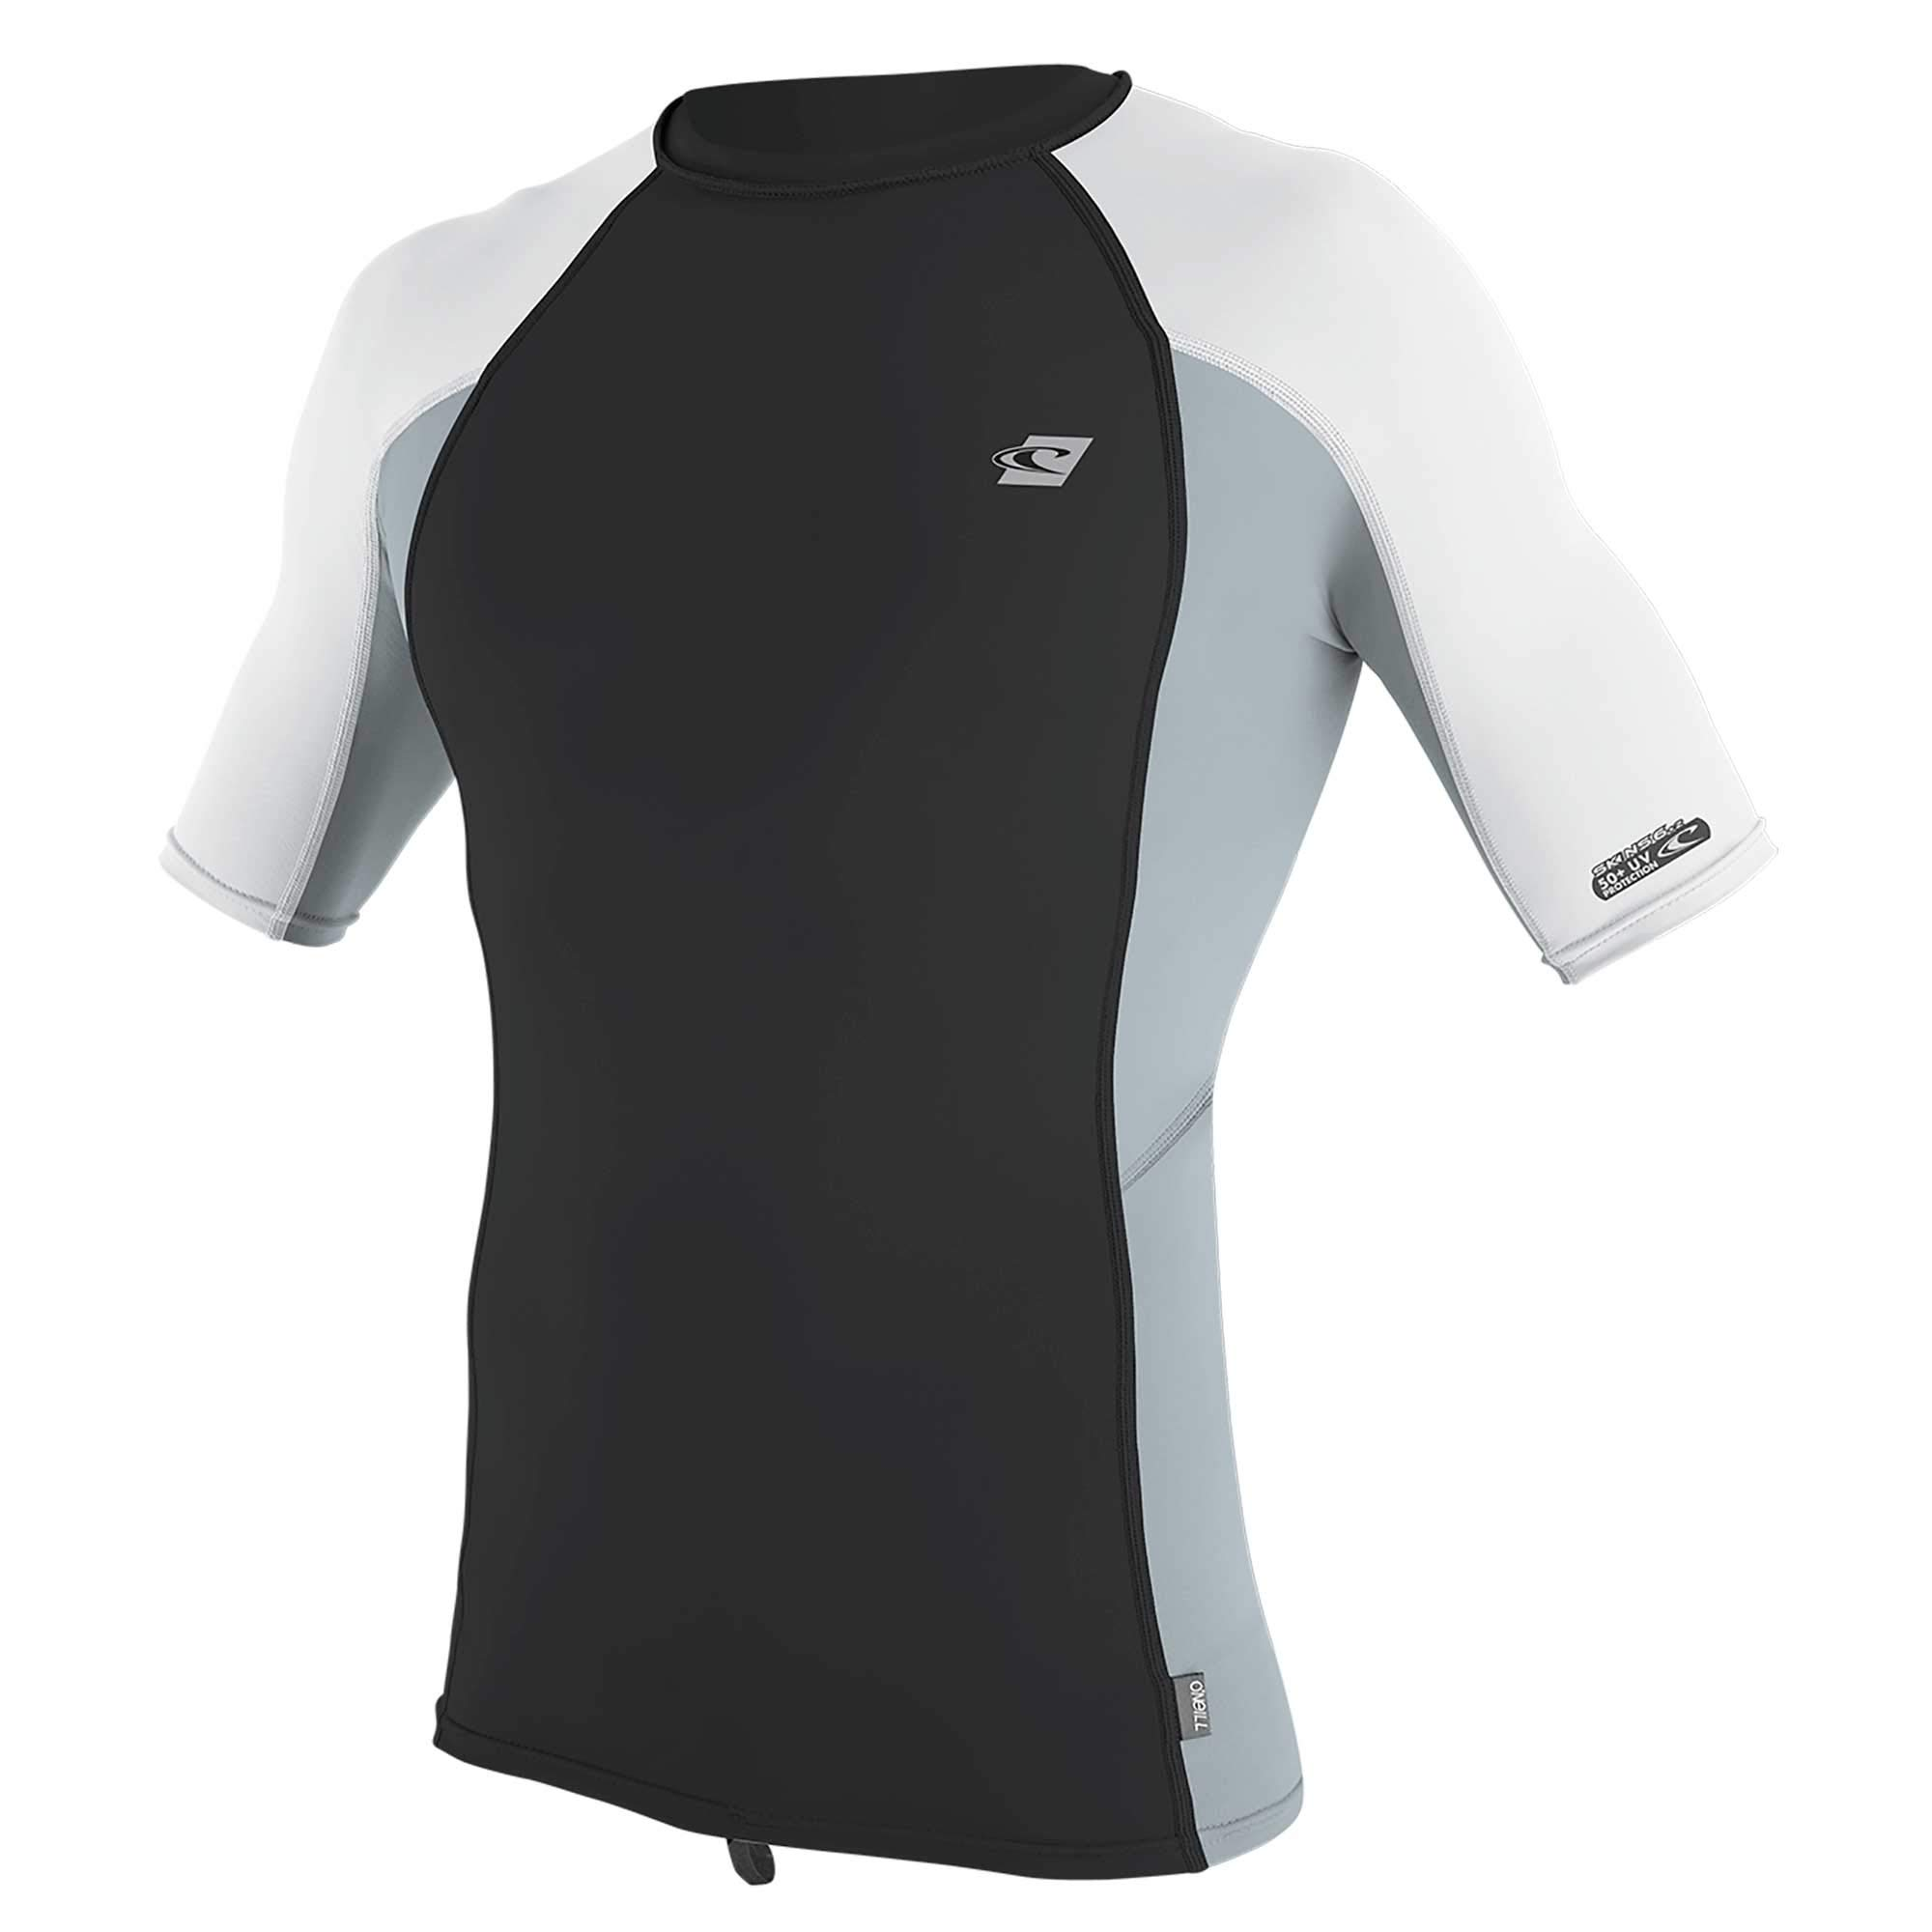 O'Neill Wetsuits Men's Premium Skins UPF 50+ Short Sleeve Rash Guard, Midnight Oil/Cool Grey/White, X-Small by O'Neill Wetsuits